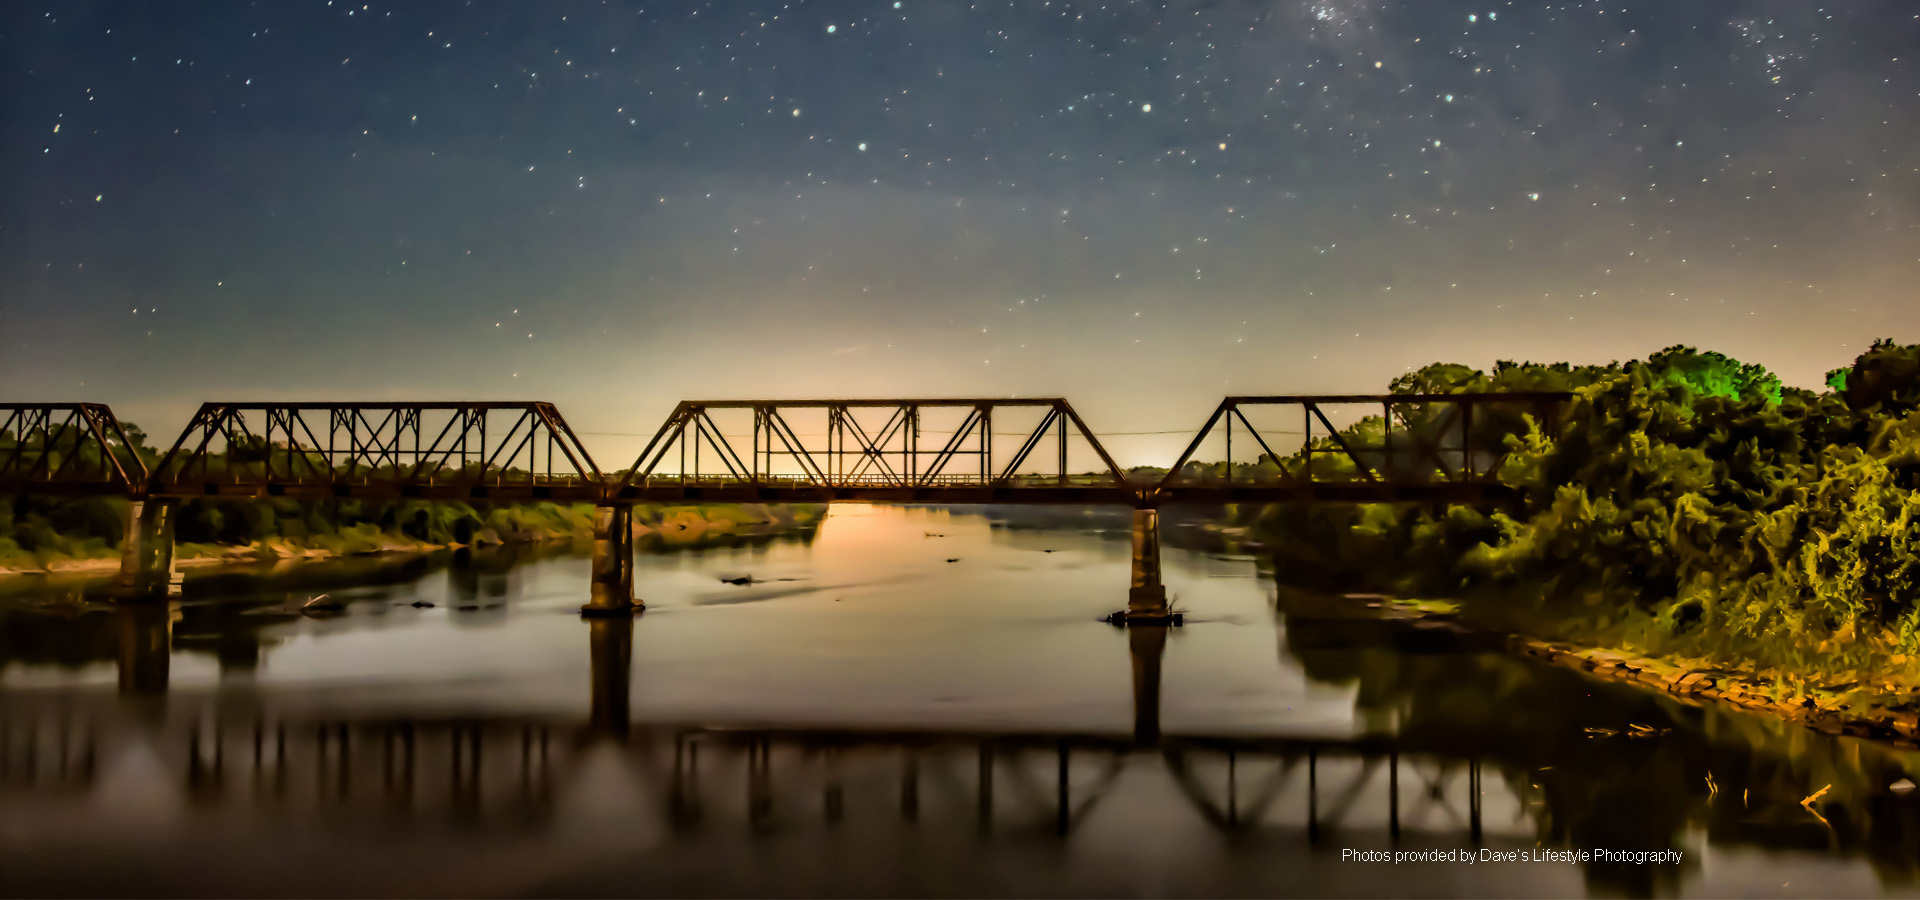 Carpenters Bluff Bridge Image by Dave's Lifestyle Photography